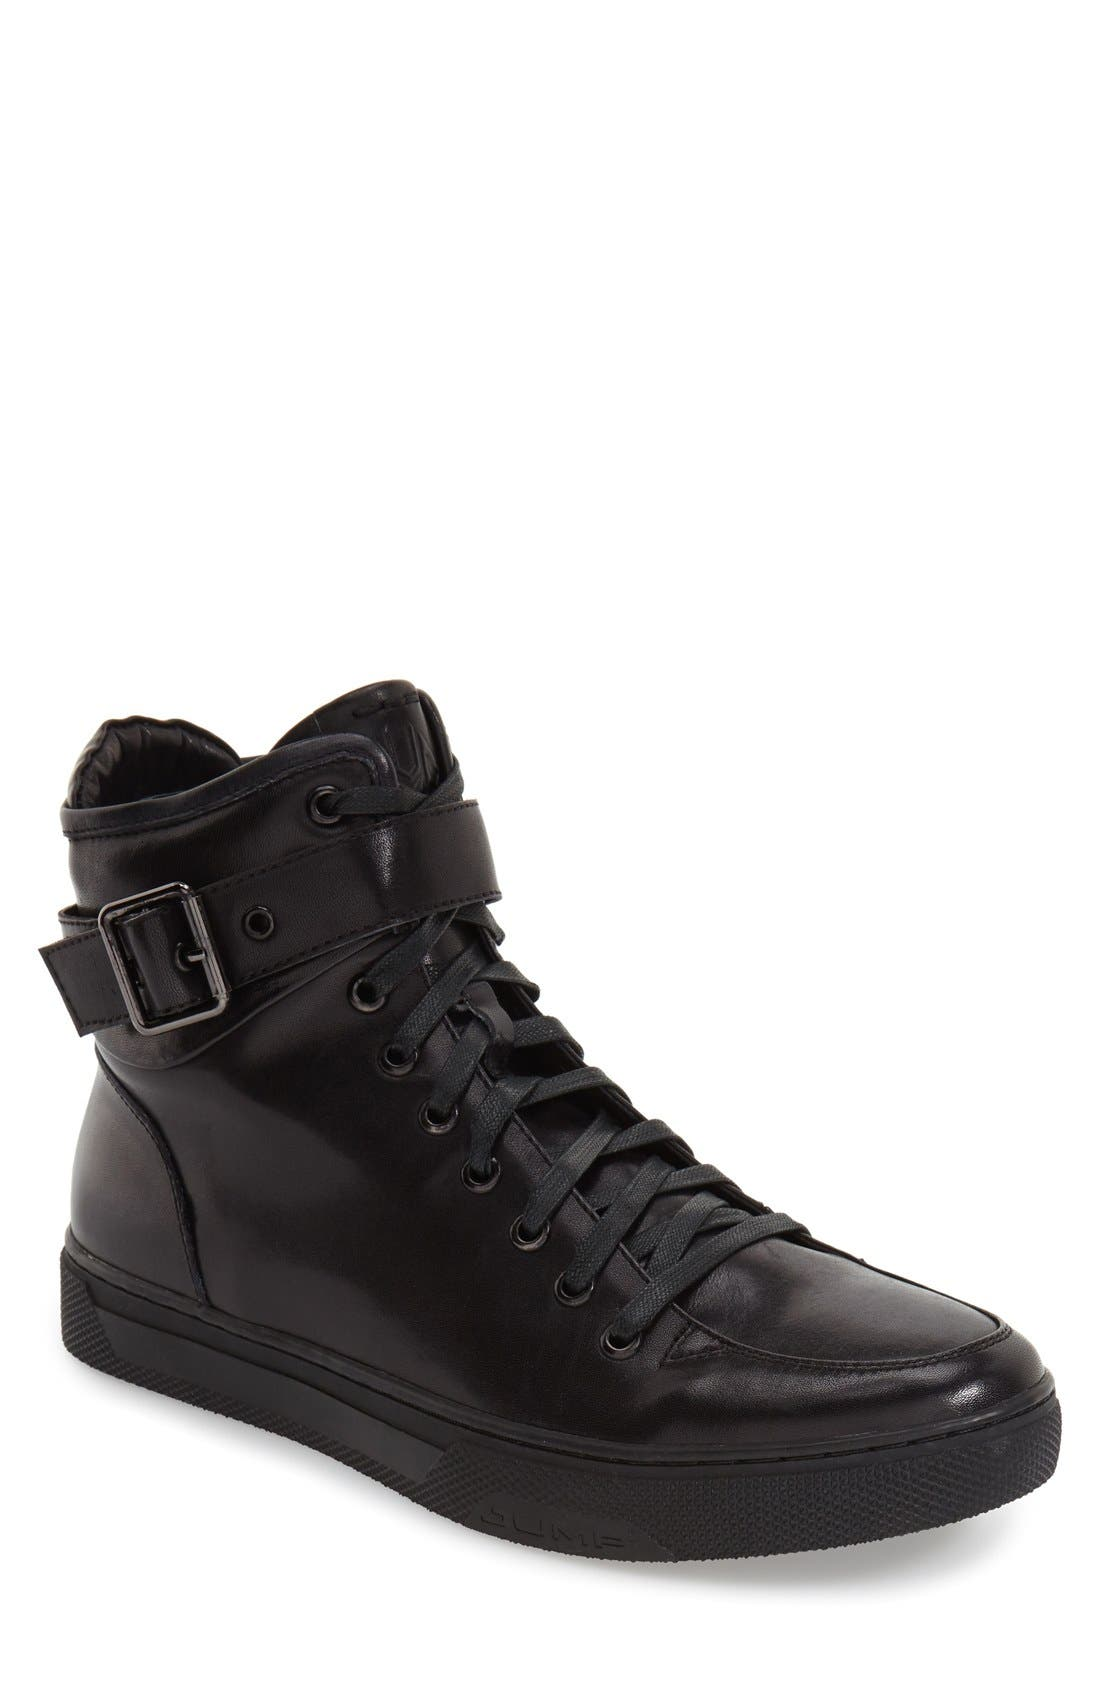 Sullivan High Top Sneaker,                             Main thumbnail 1, color,                             BLACK LEATHER